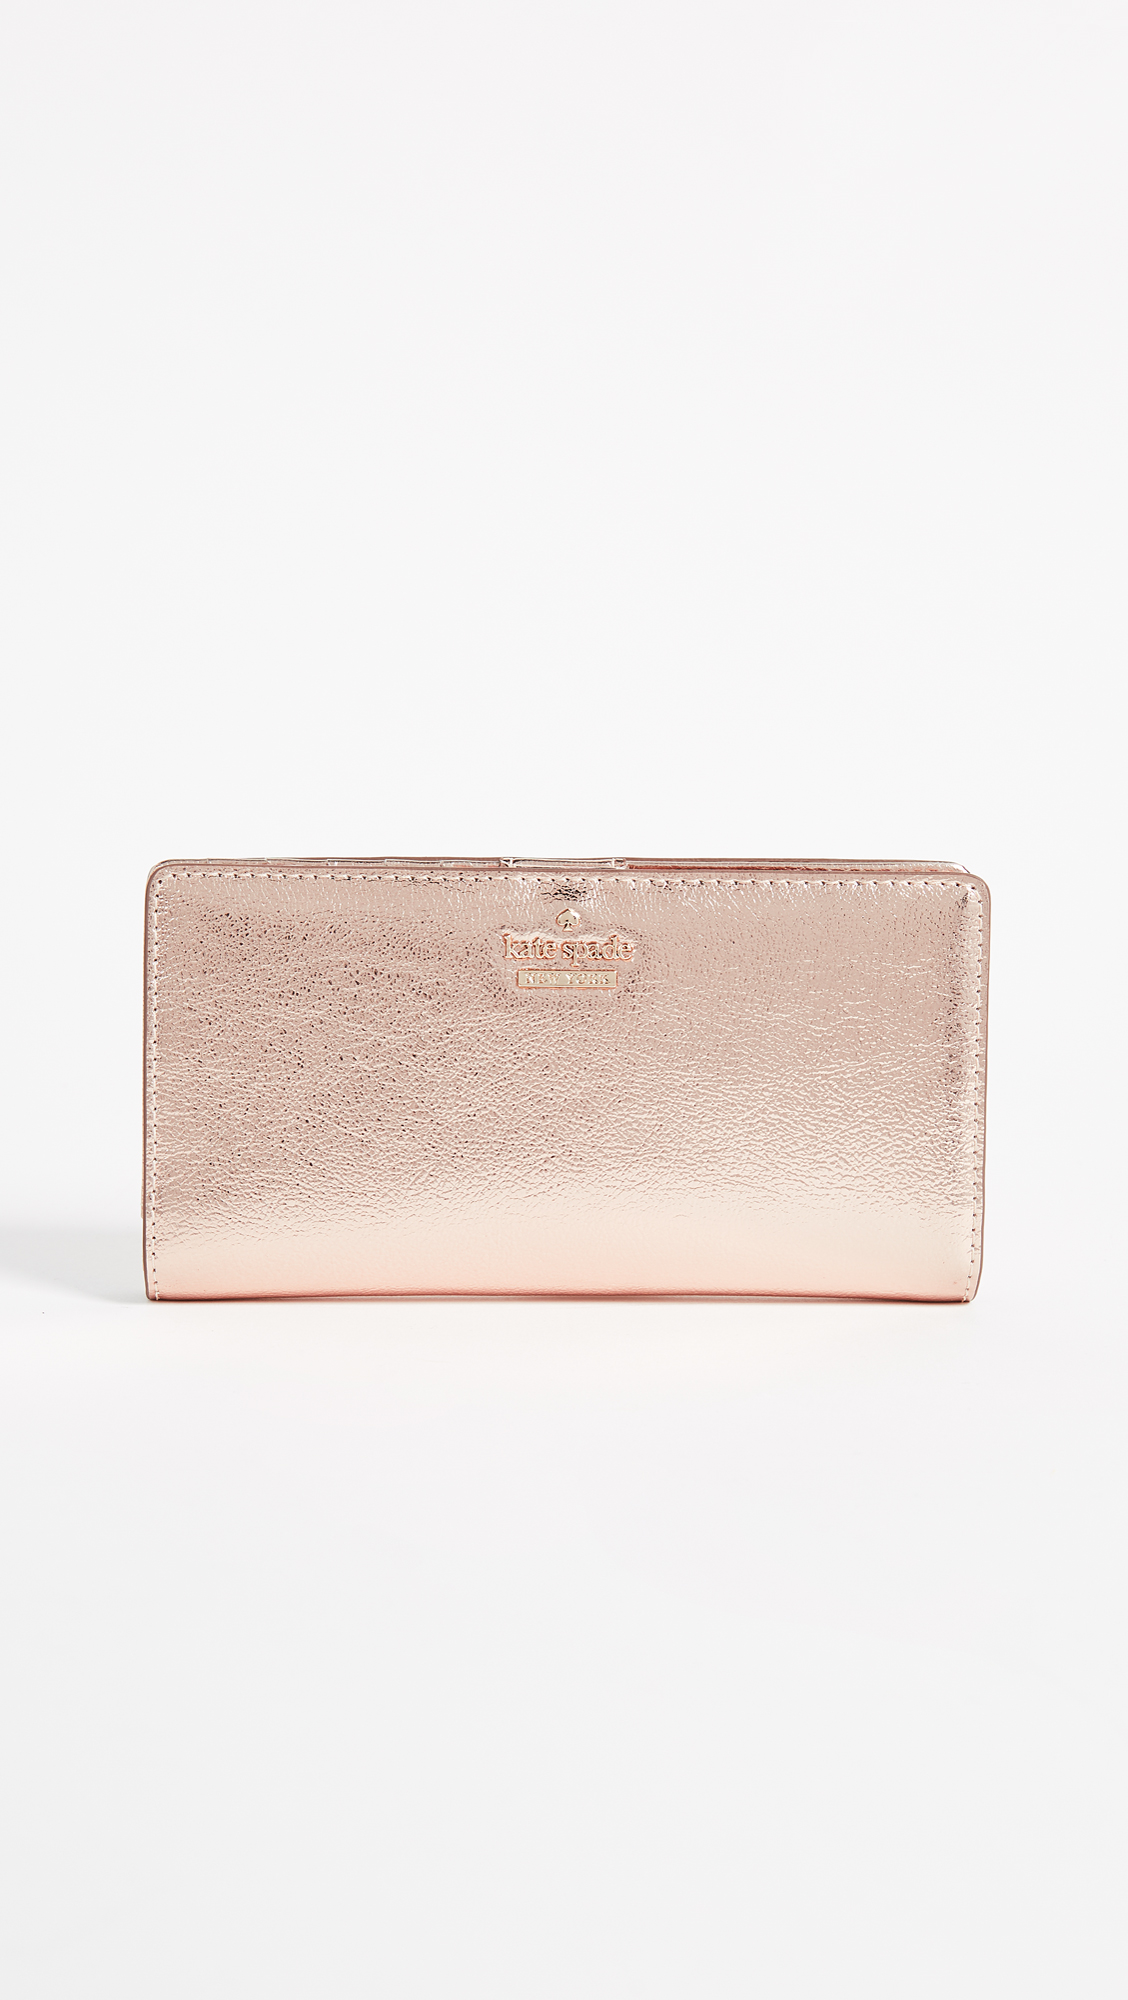 Kate Spade New York Highland Drive Stacy Wallet - Soft Rose Gold